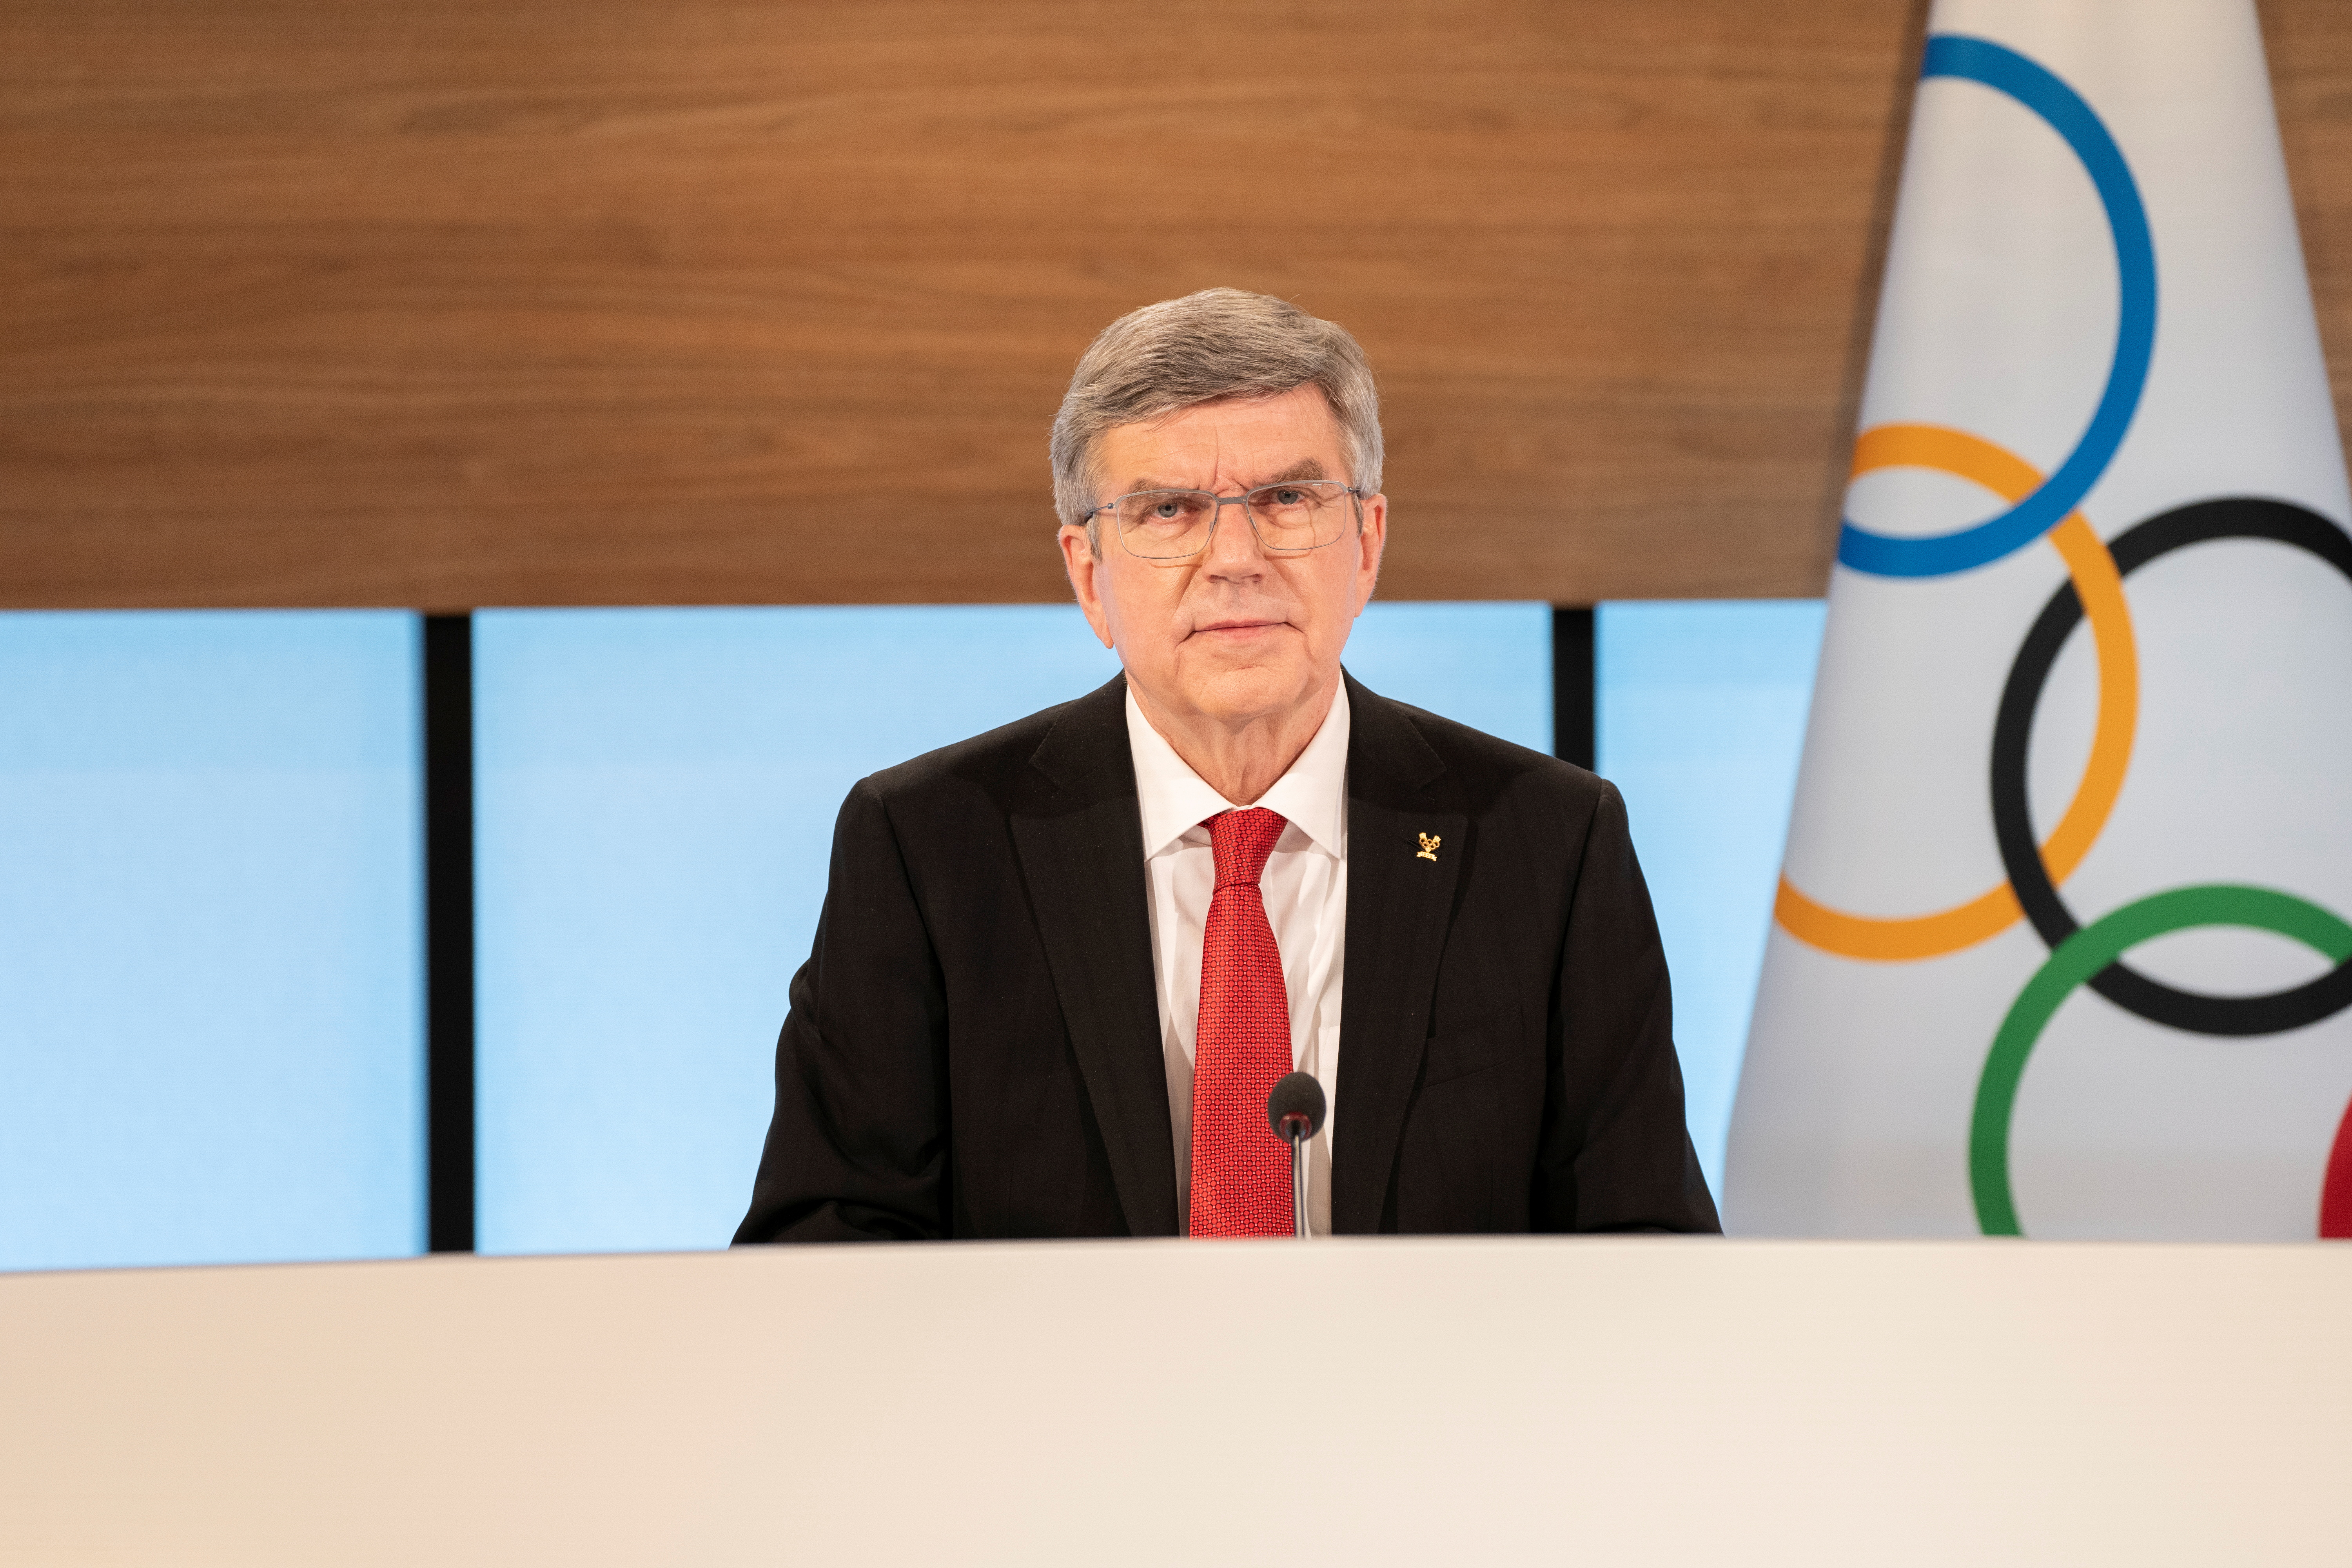 International Olympic Committee President Thomas Bach opens the 137th IOC Session and virtual meeting in Lausanne, Switzerland, March 10, 2021. Greg Martin/IOC/Handout via REUTERS